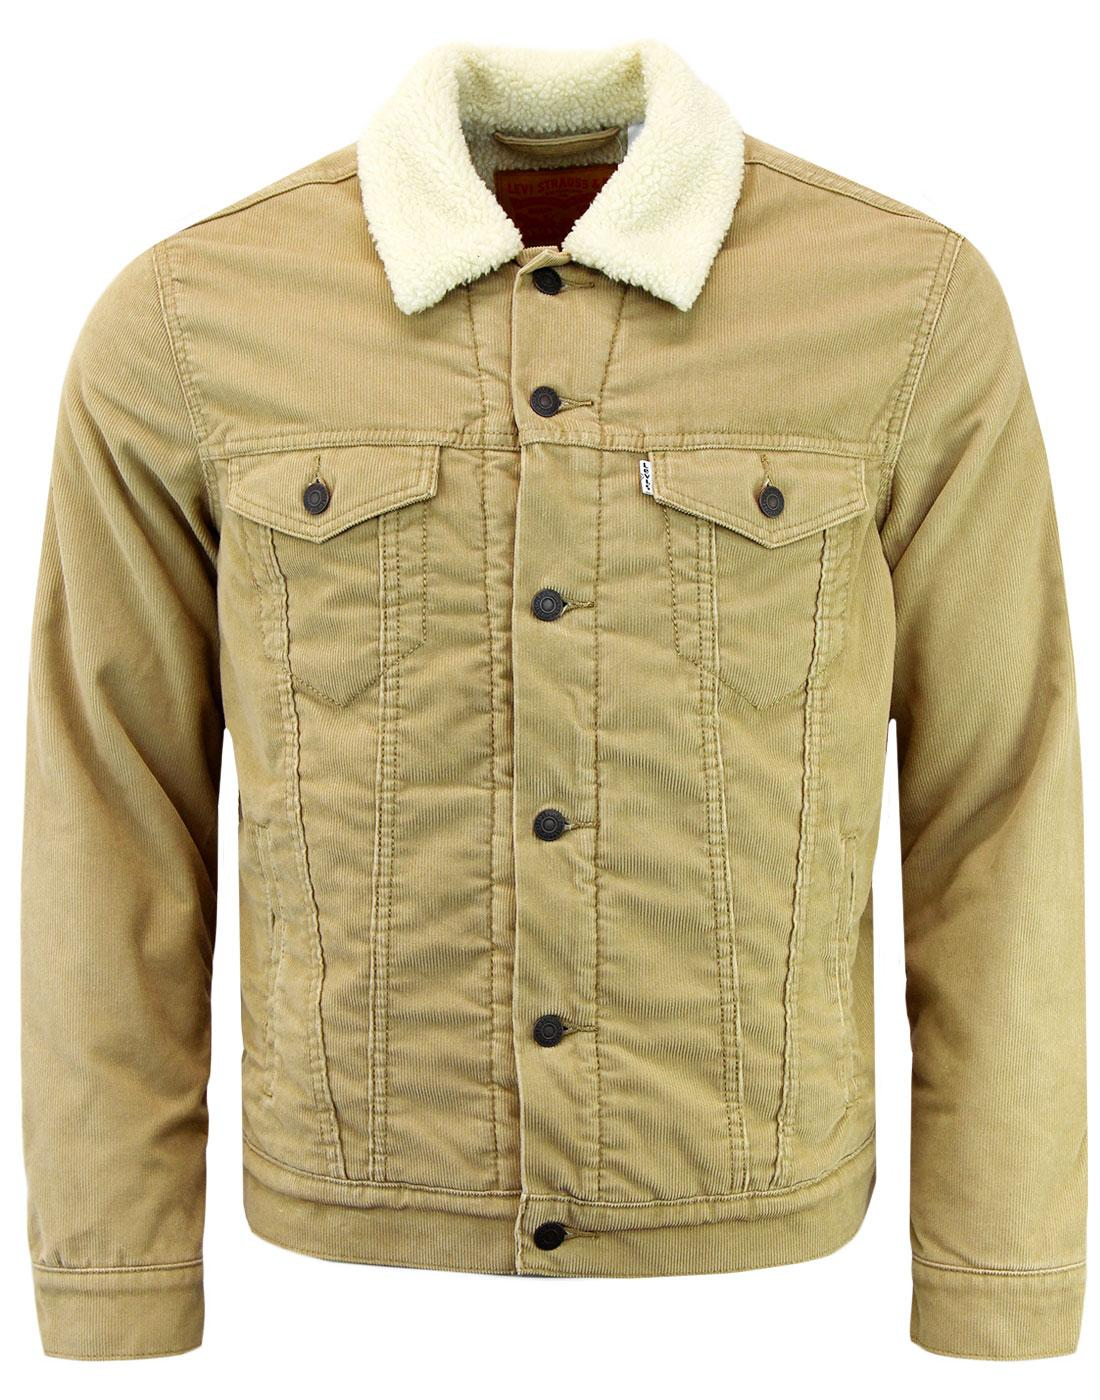 LEVI'S Retro Good Sherpa Cord Trucker Jacket SAND